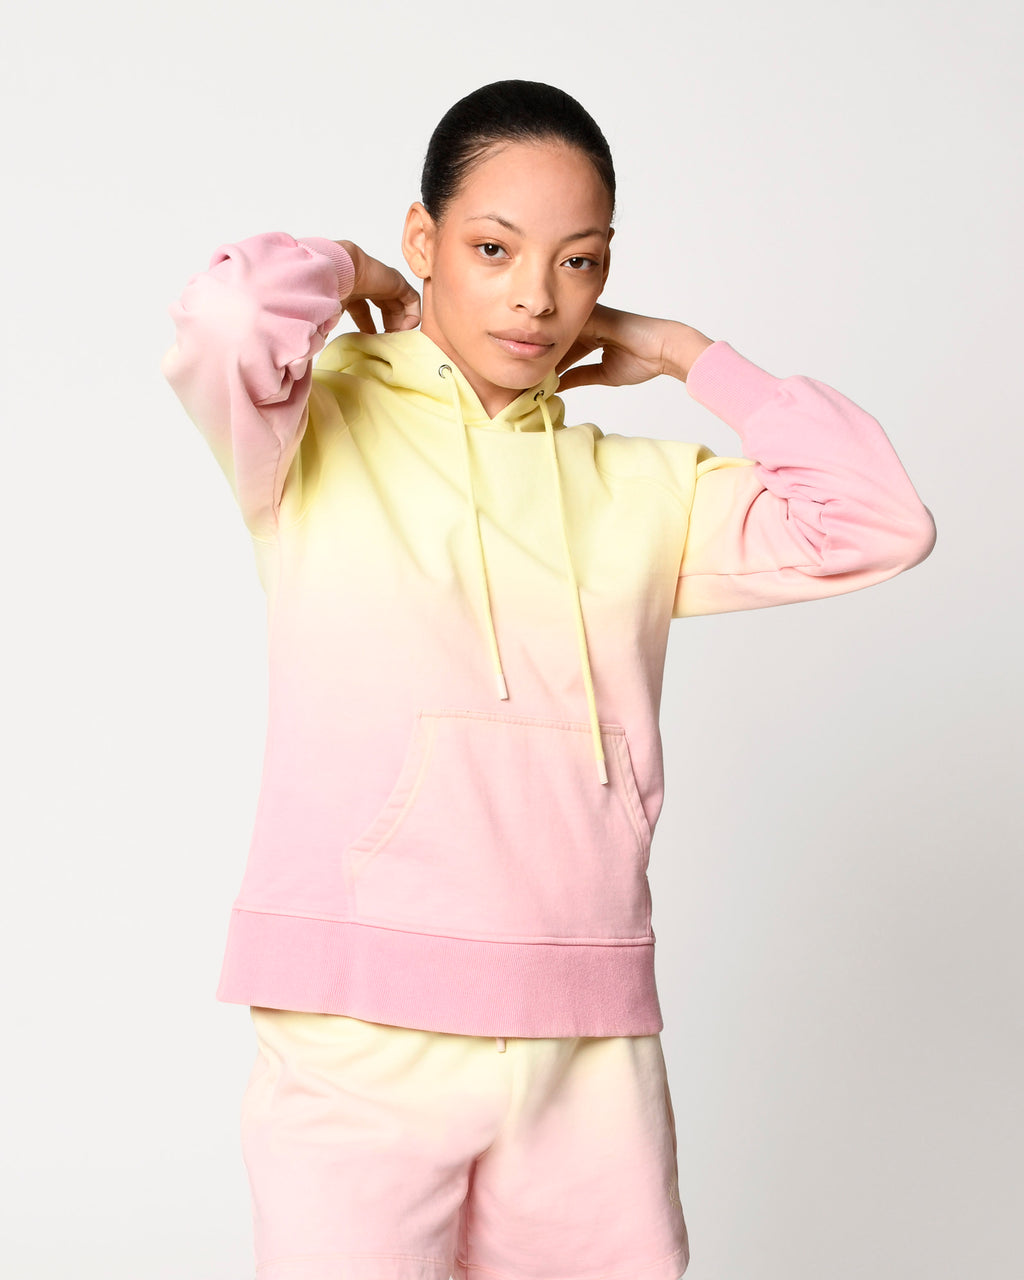 CT18811 - SORBET DIP DYE HOODIE - tops - knitwear - Our sweet sorbet colored hoodie is hand dyed for an ombre effect. Featuring monochrome evil eye embroidery. Add 1 line break Stylist Tip: Size up for a cozy and oversized fit.